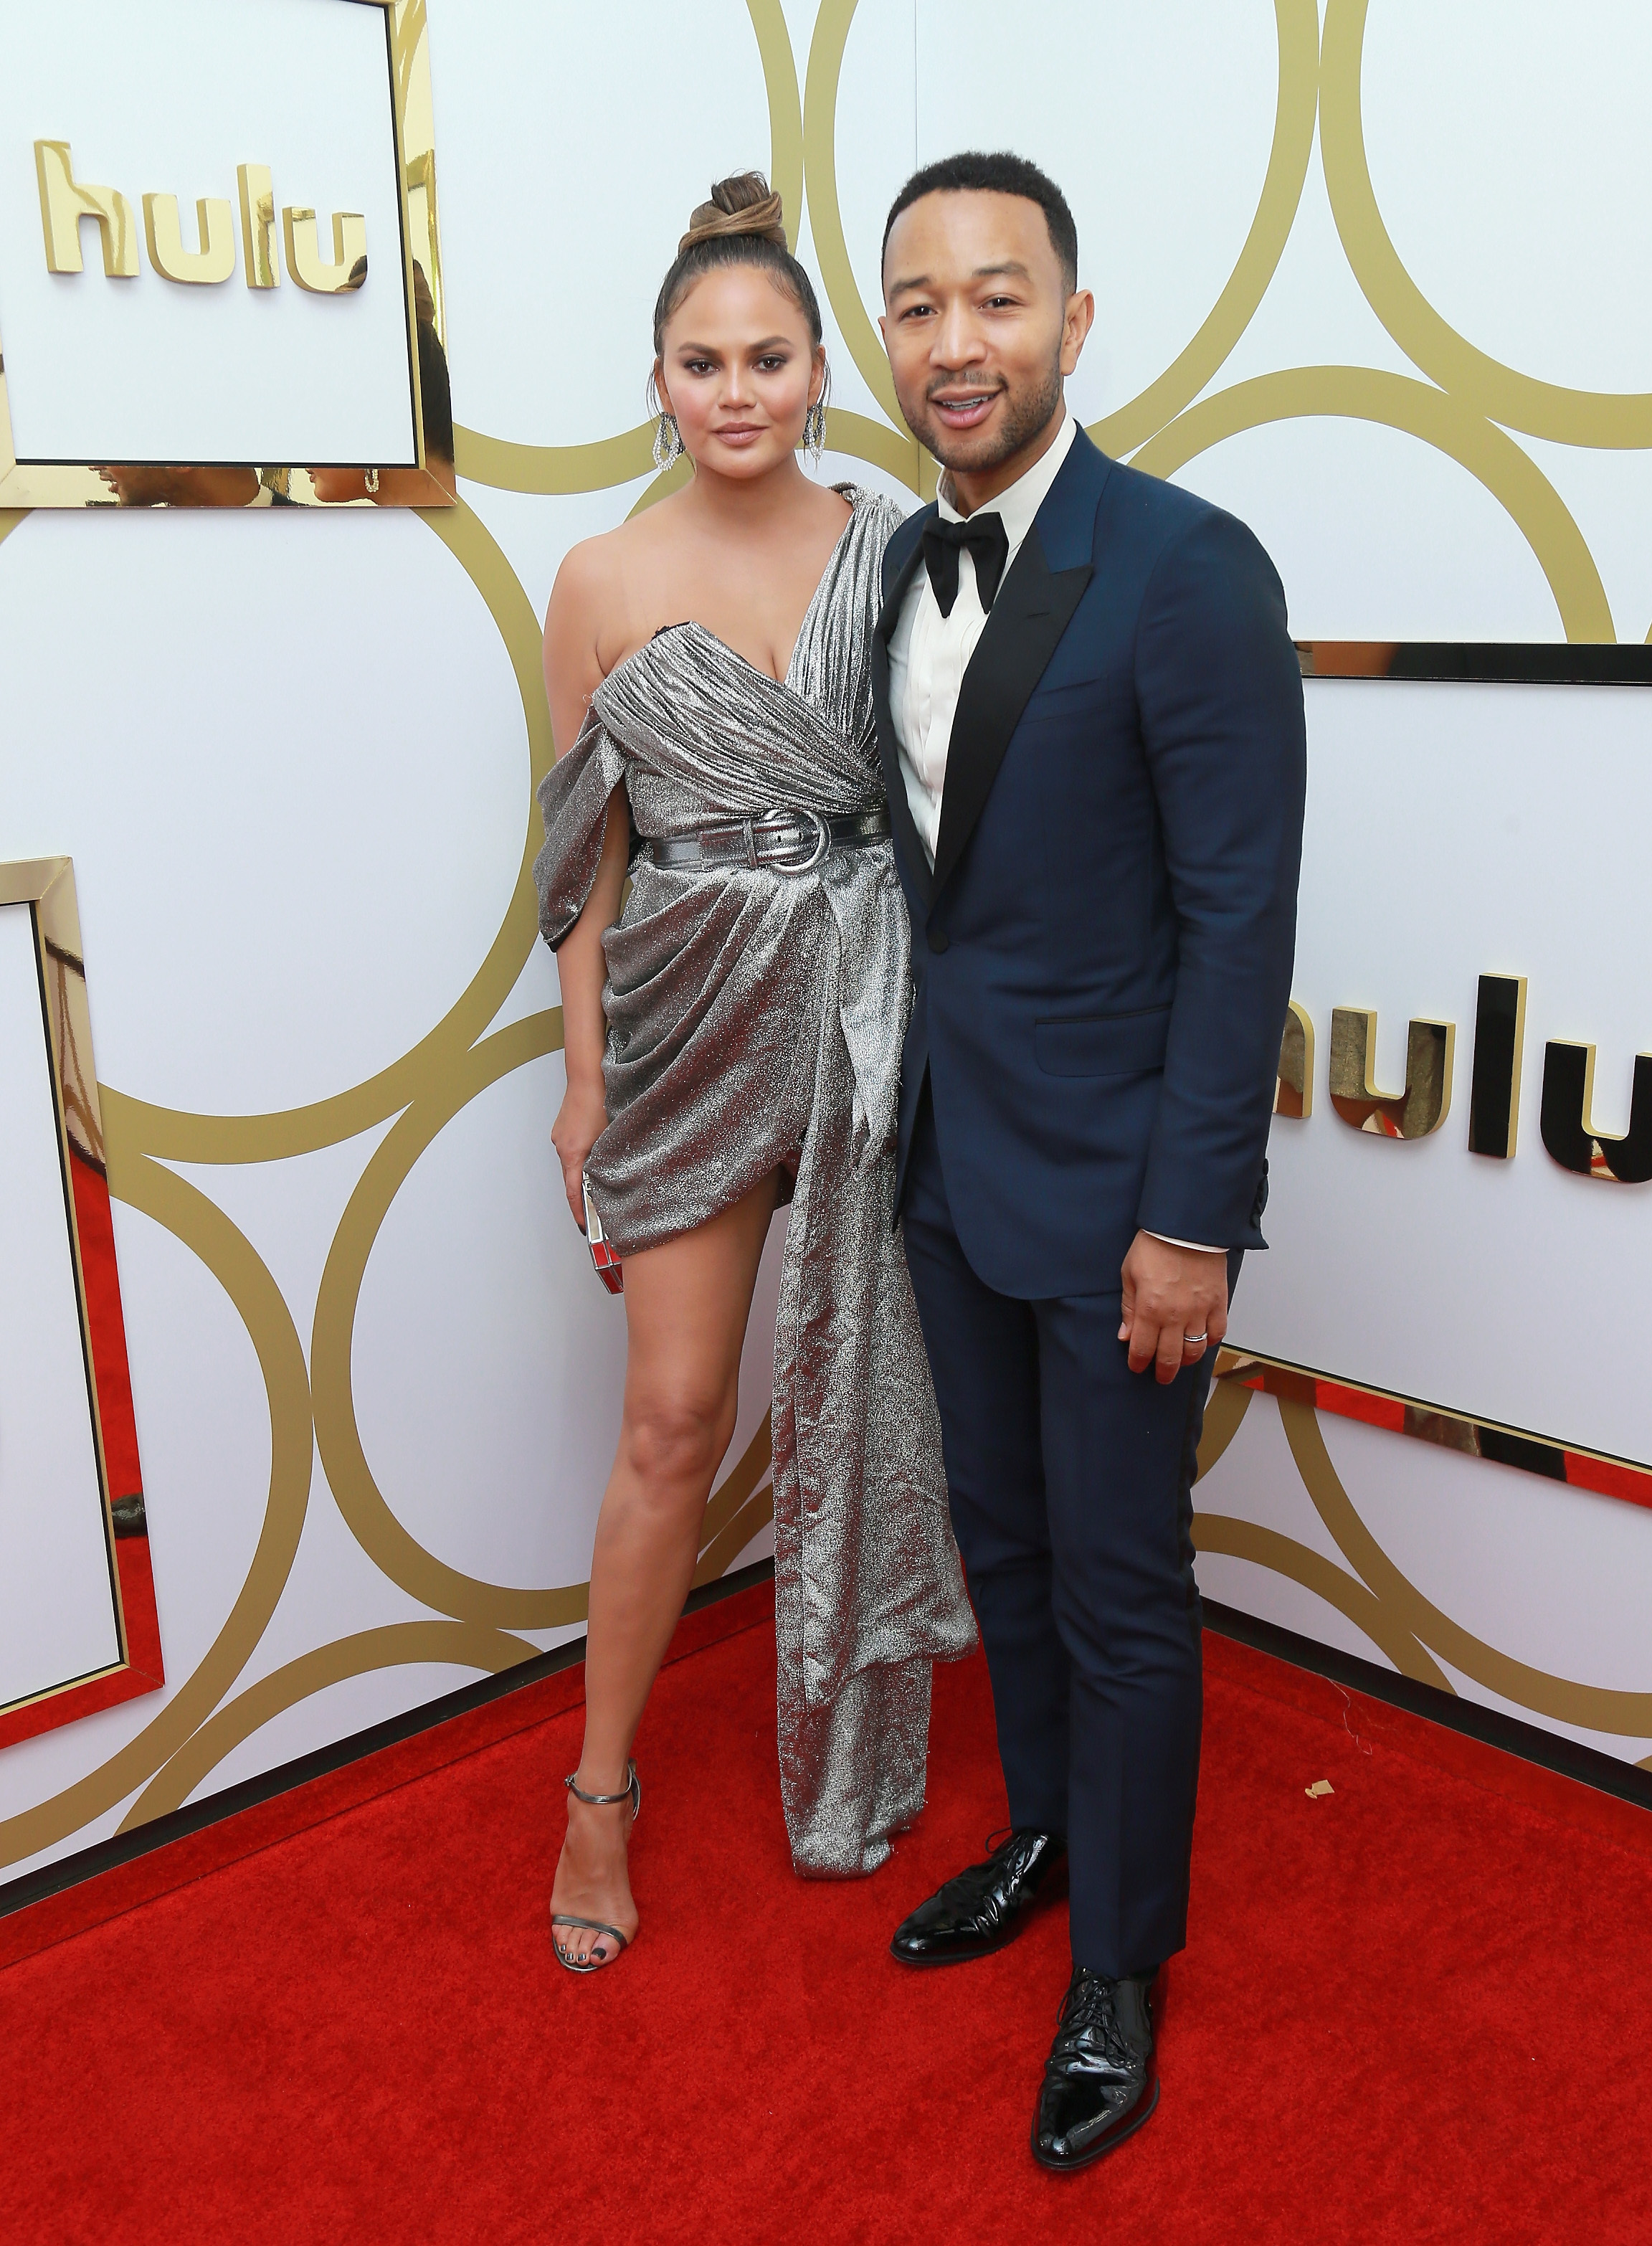 Chrissy Teigen and John Legend attend Hulu's Emmys afterparty at the Nomad Hotel in Los Angeles on Sept. 17, 2018.